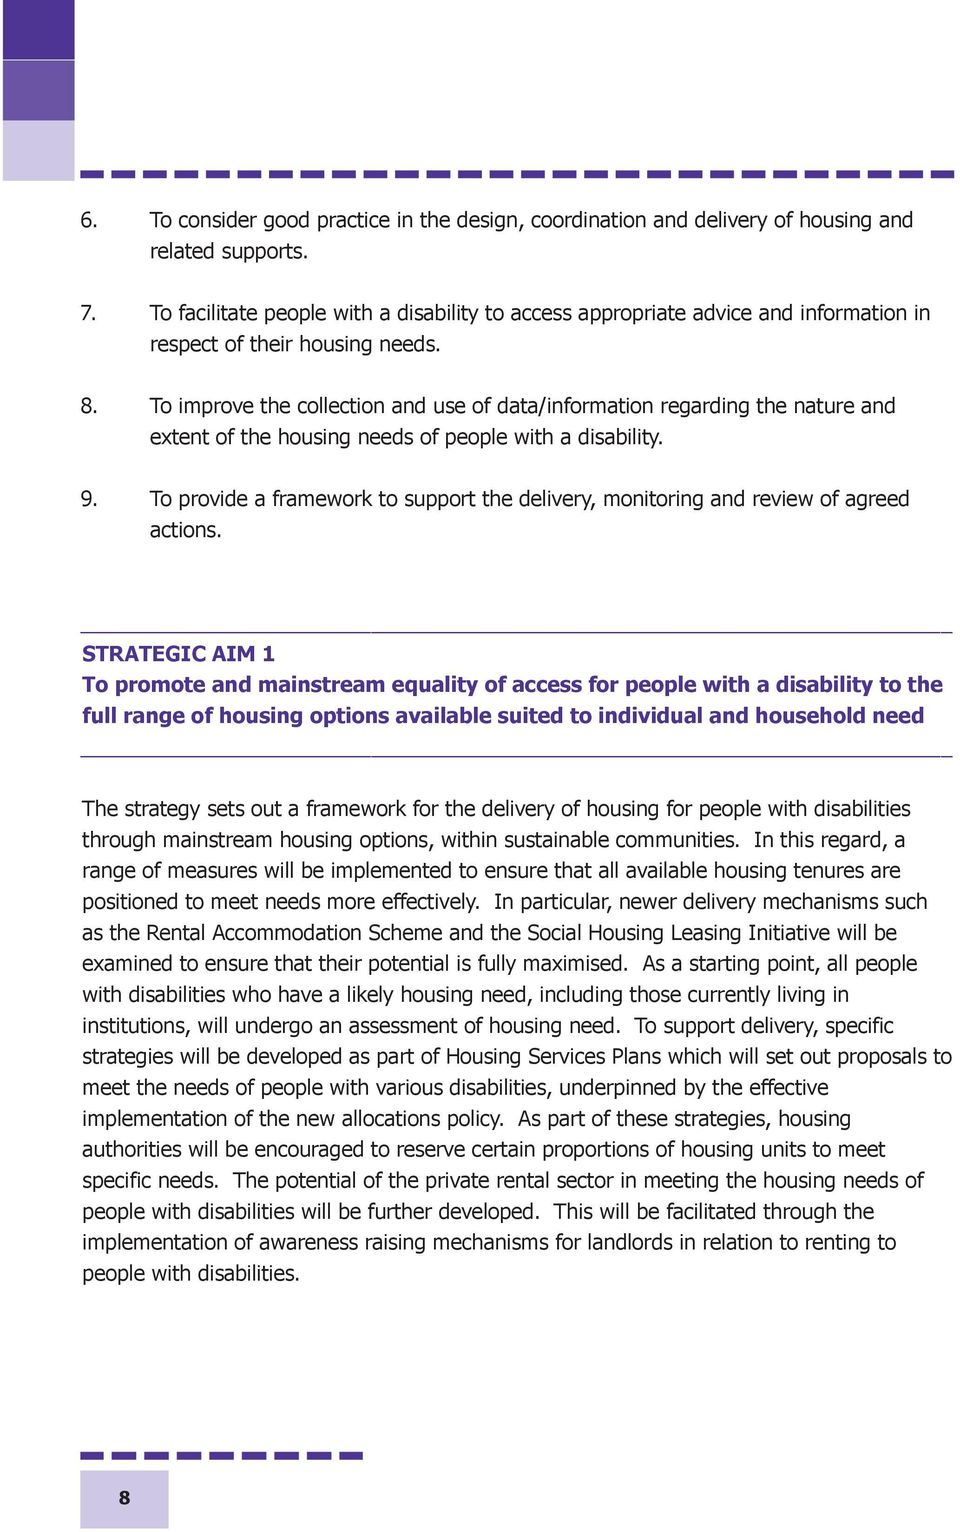 To improve the collection and use of data/information regarding the nature and extent of the housing needs of people with a disability. 9.